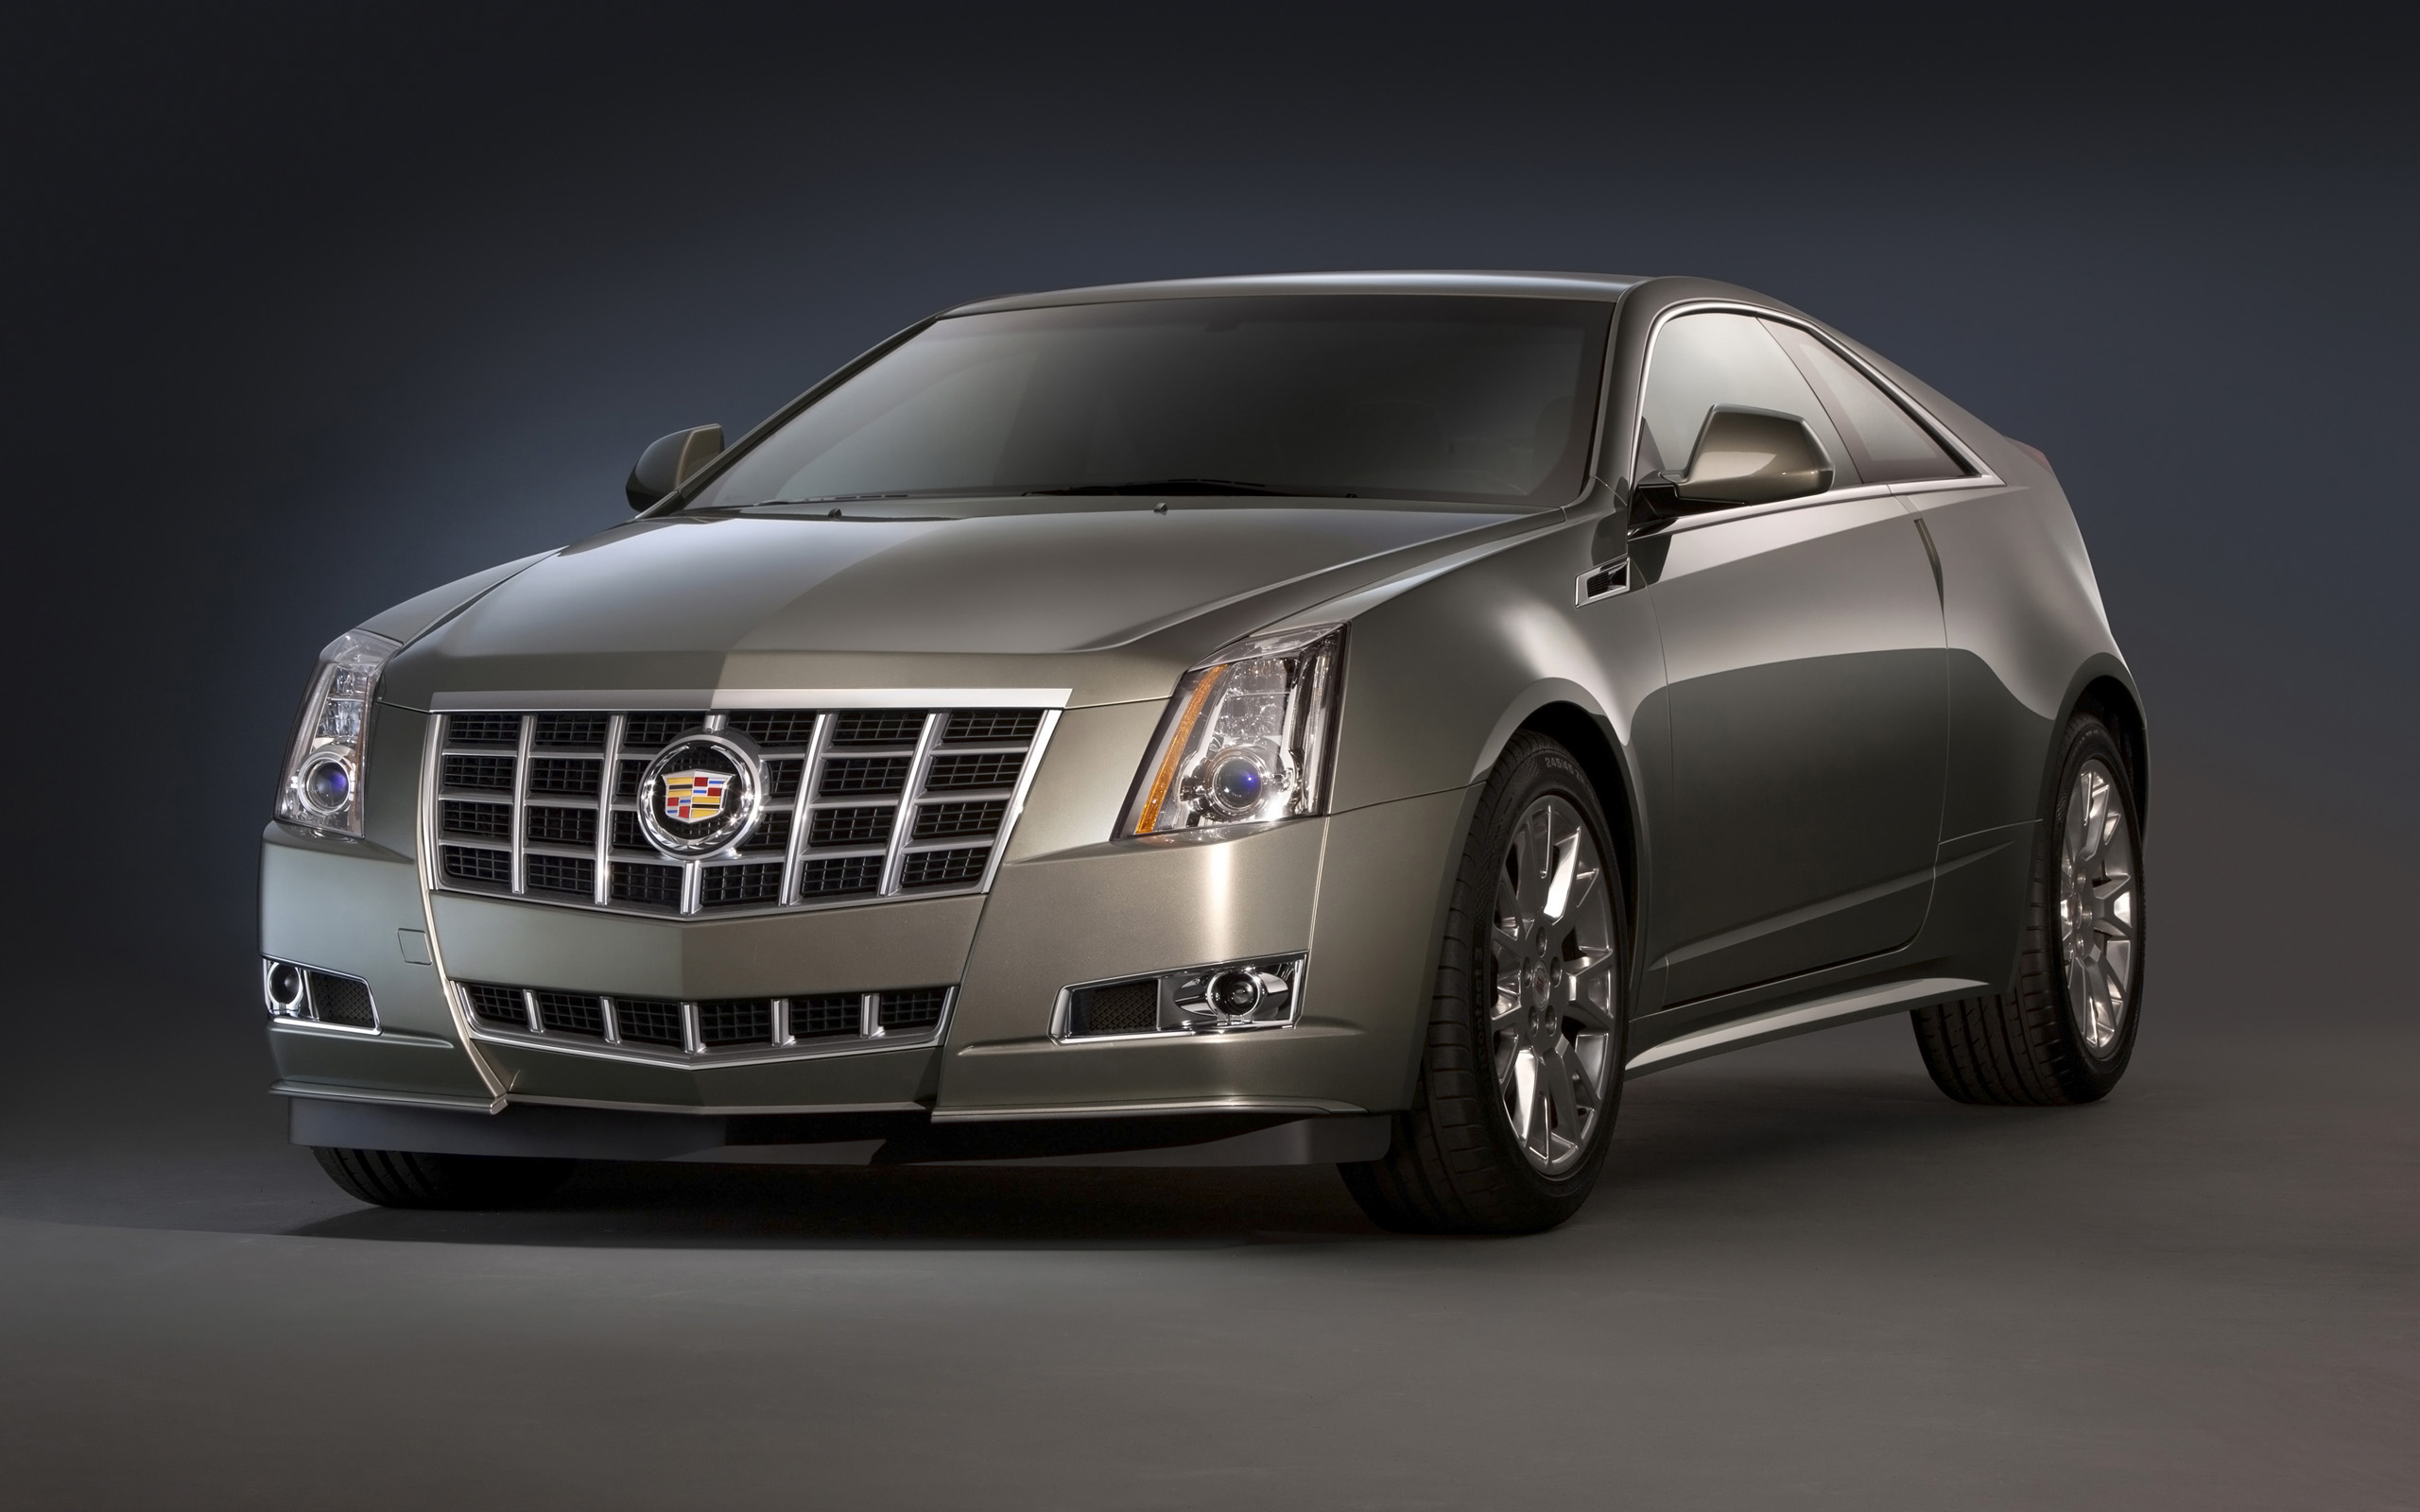 2014 cadillac cts coupe wallpaper hd car wallpapers. Cars Review. Best American Auto & Cars Review